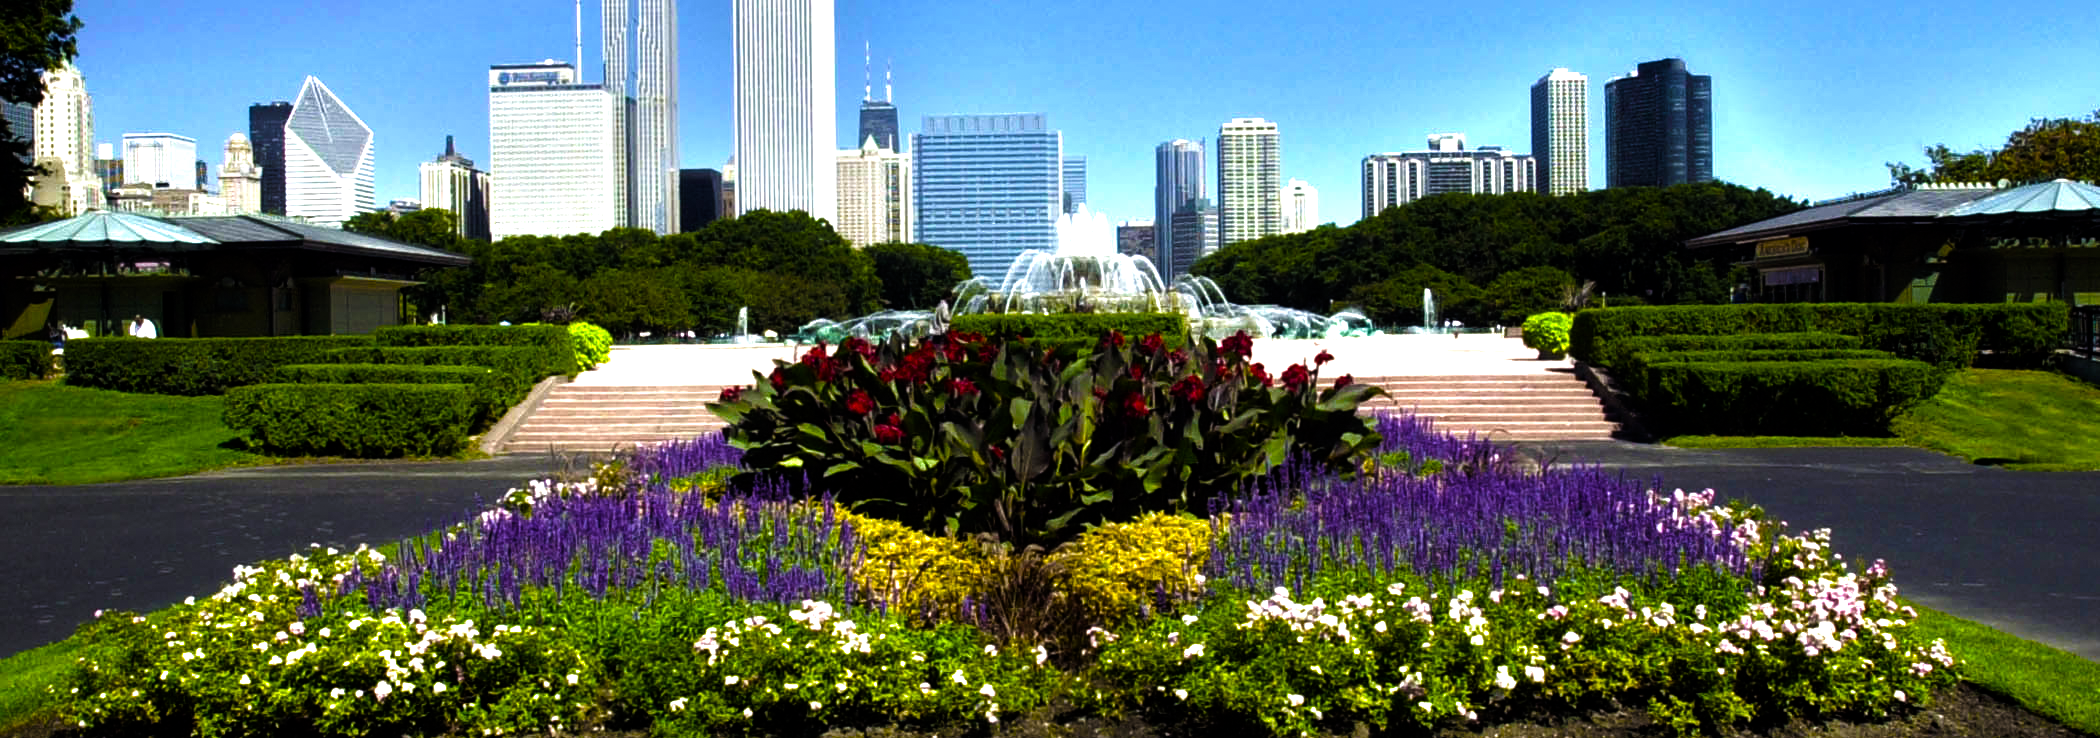 Image Gallery Chicago Parks